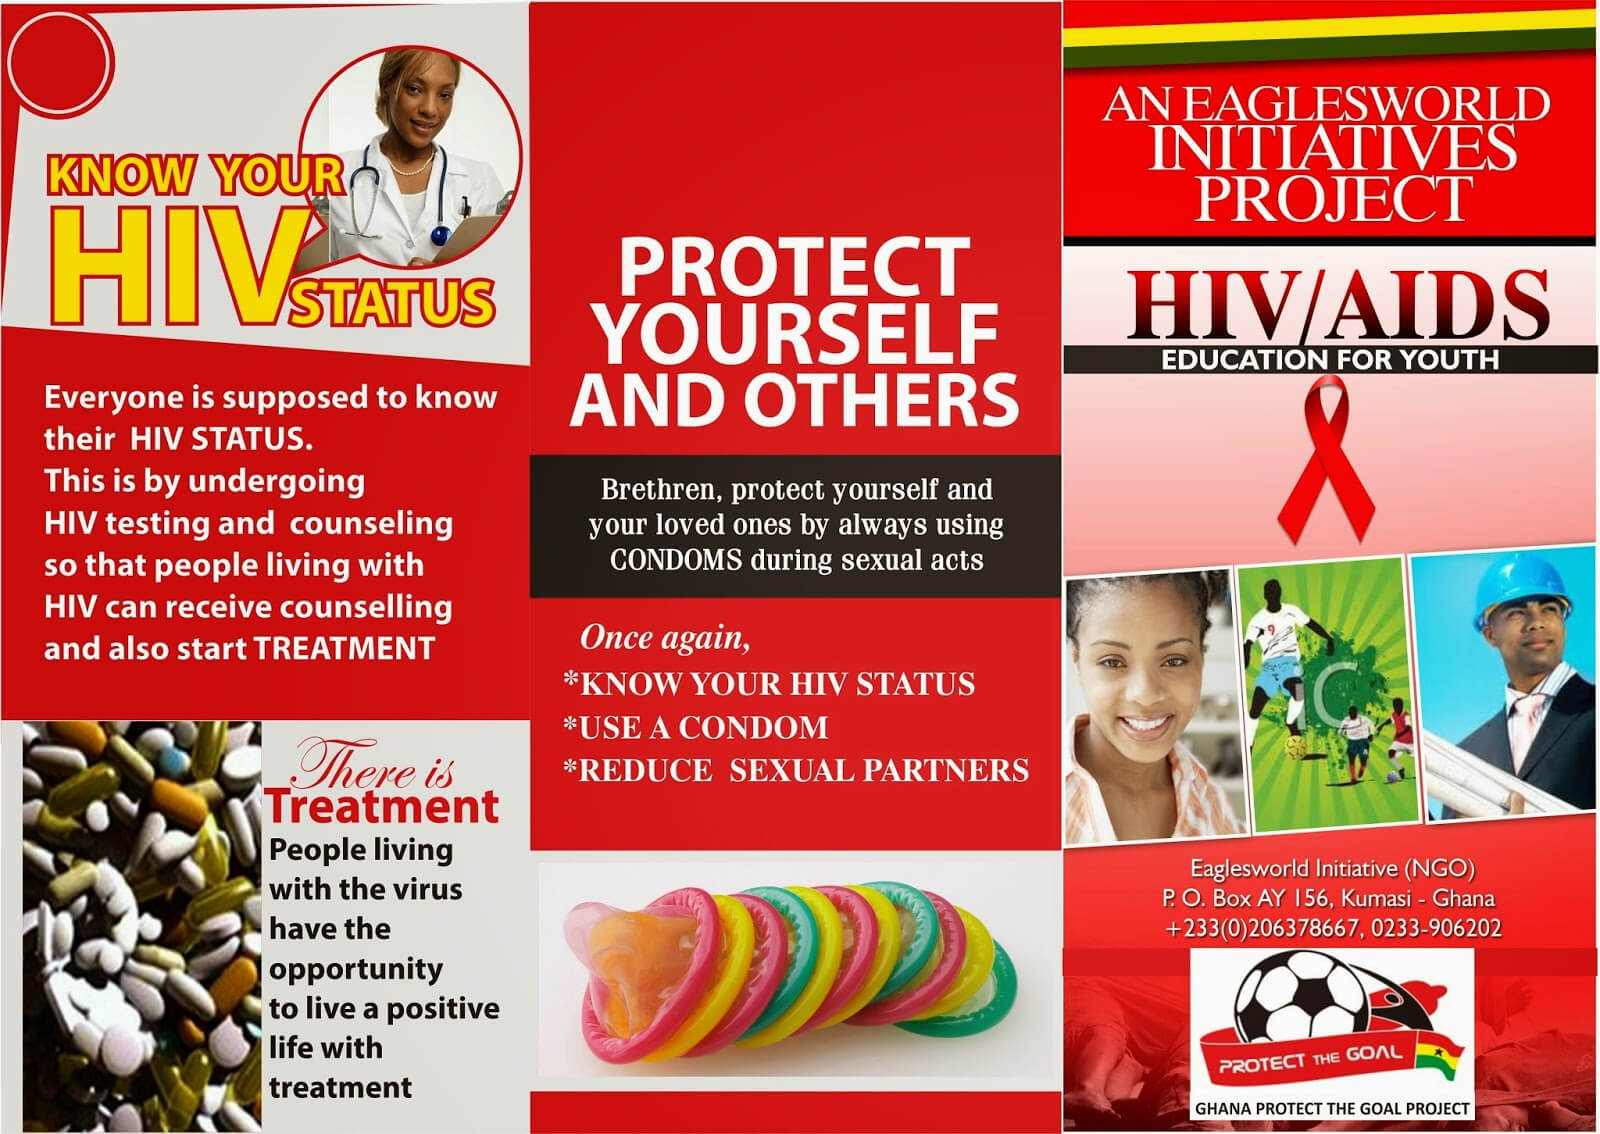 8 Best Photos Of Hiv Brochure Template - Hiv Aids Brochure With Hiv Aids Brochure Templates